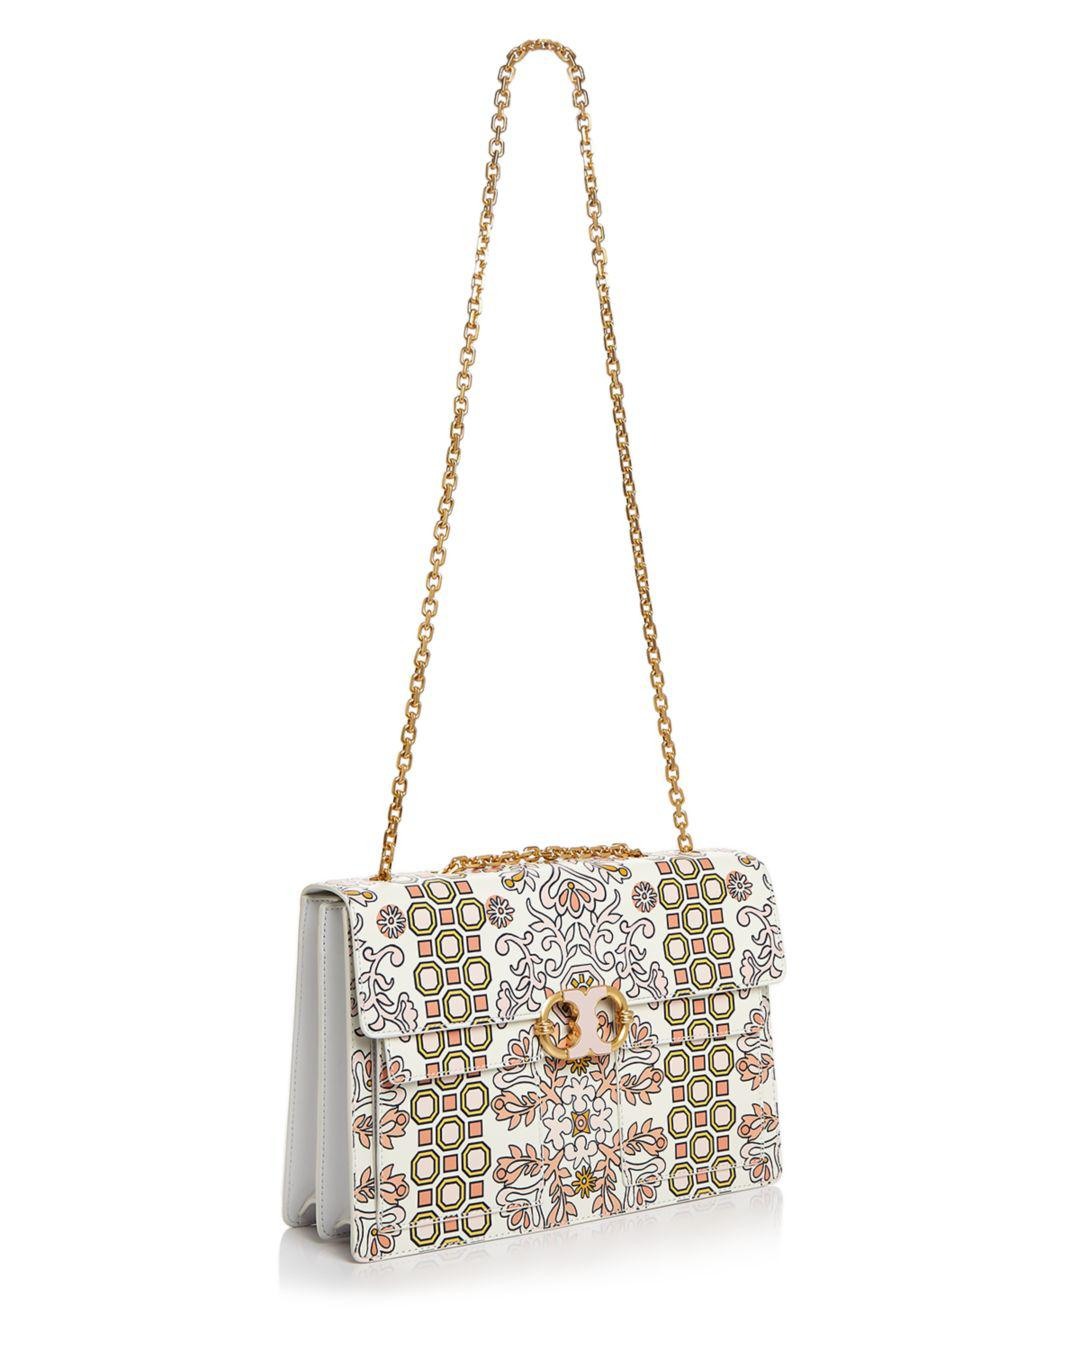 ee35aa3cb9a Tory Burch Gemini Link Large Printed Leather Shoulder Bag in ...